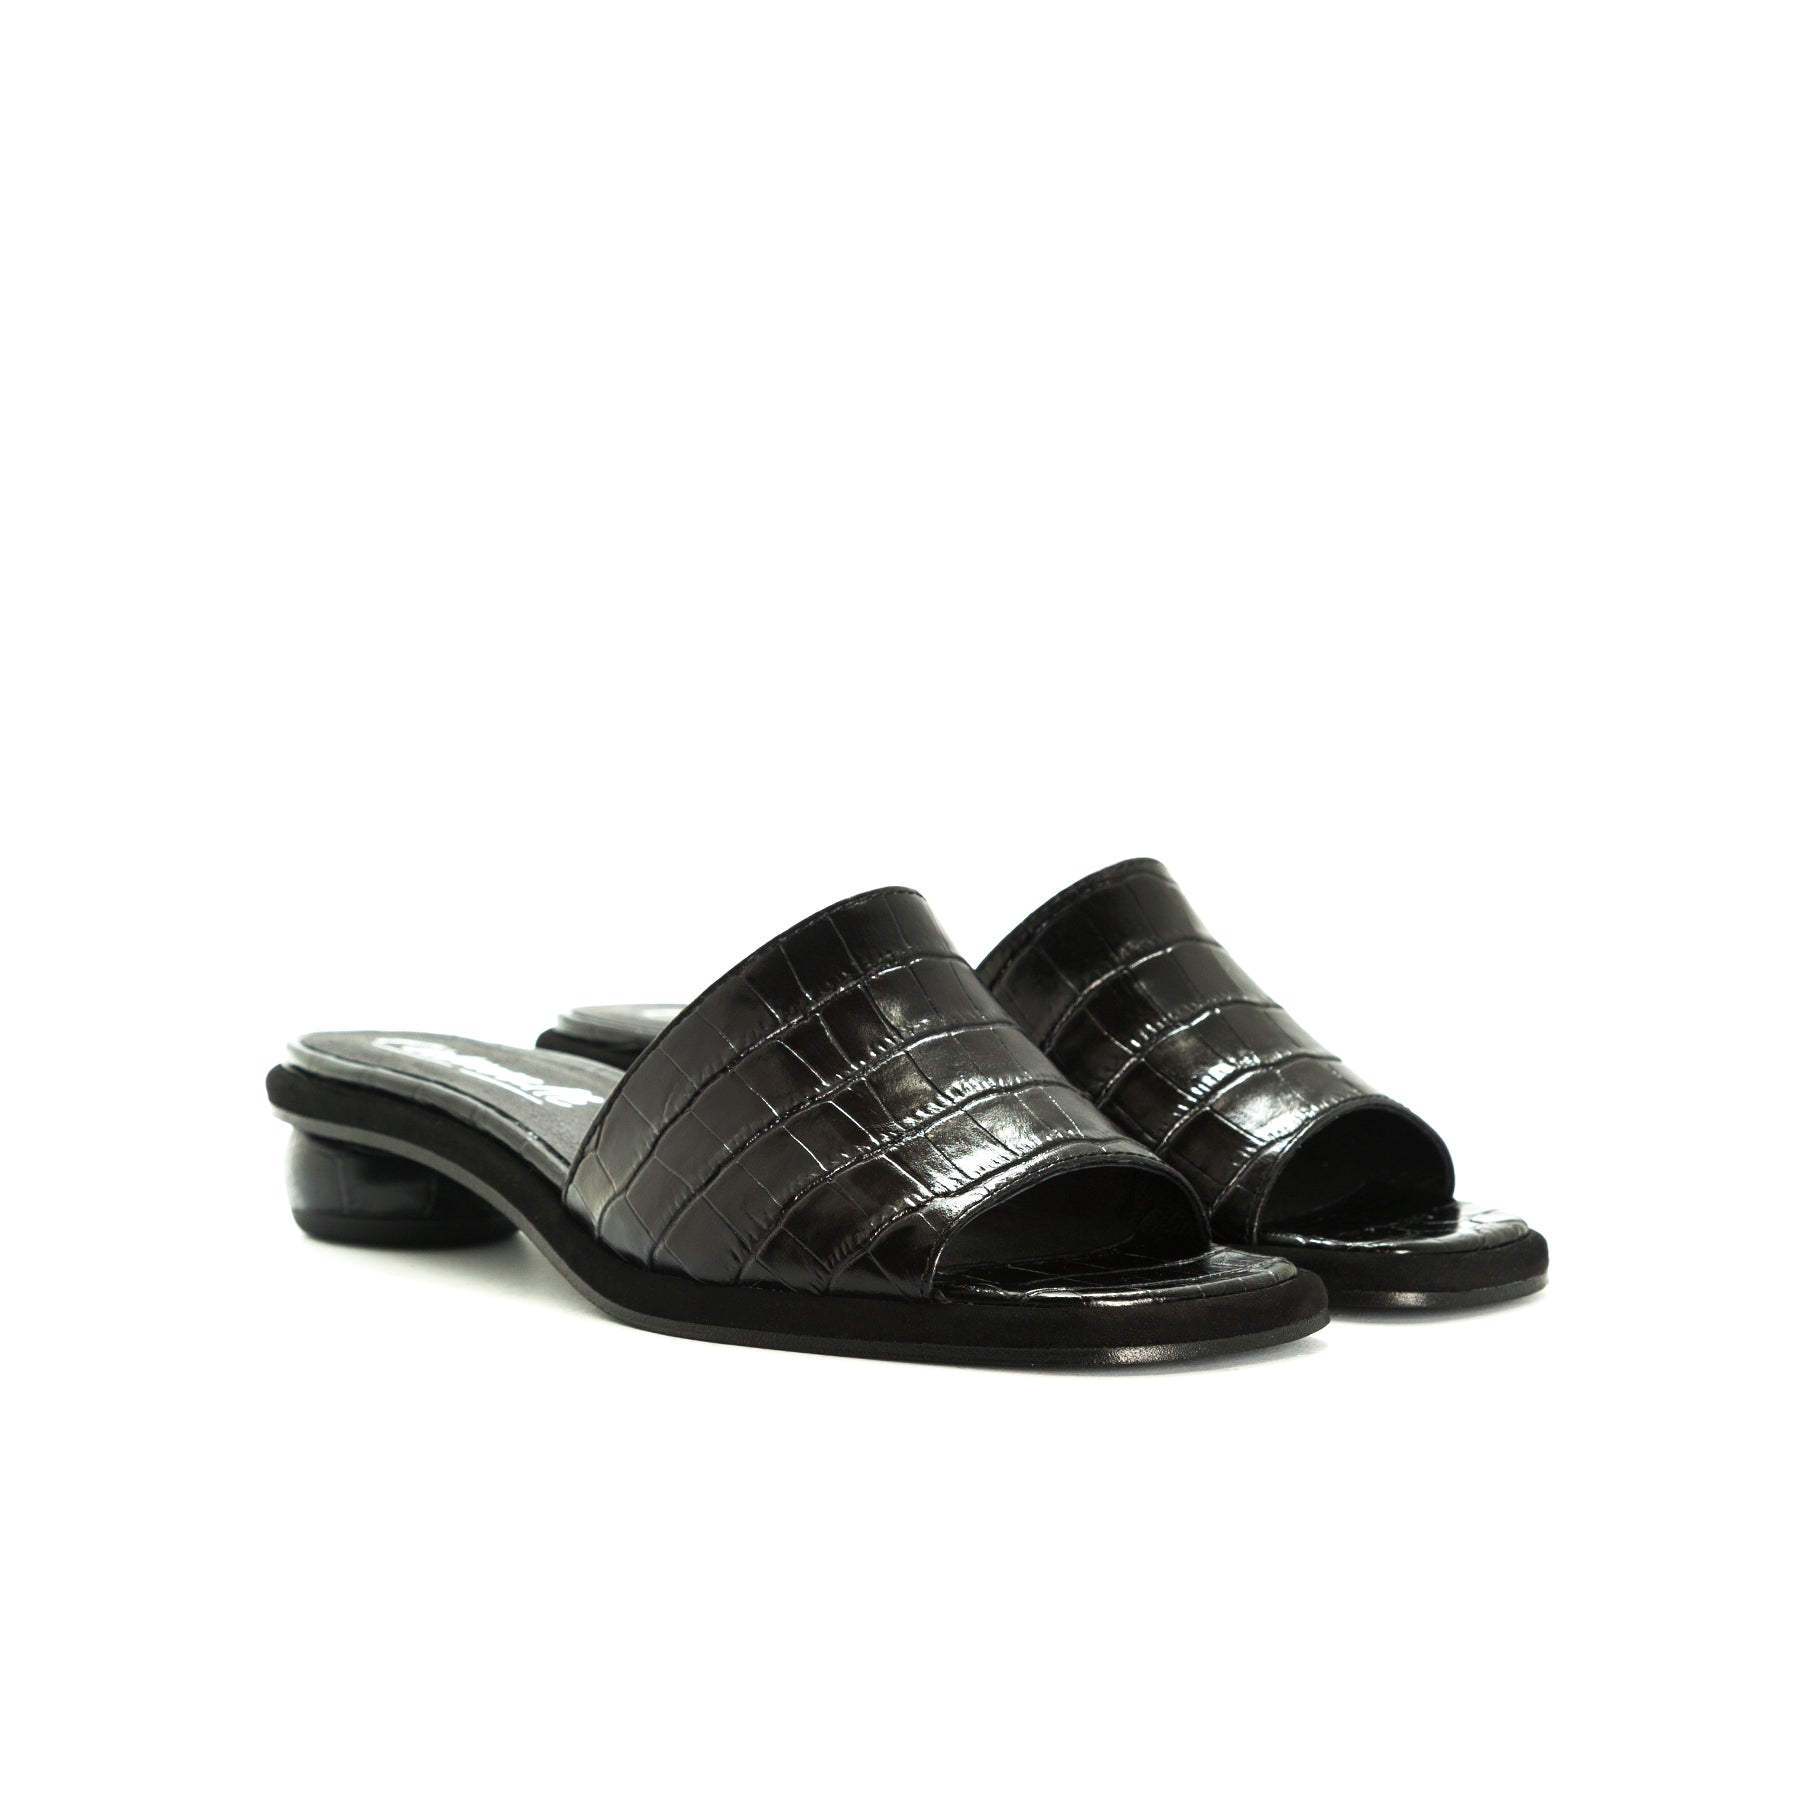 Missy Black Croco Sandals